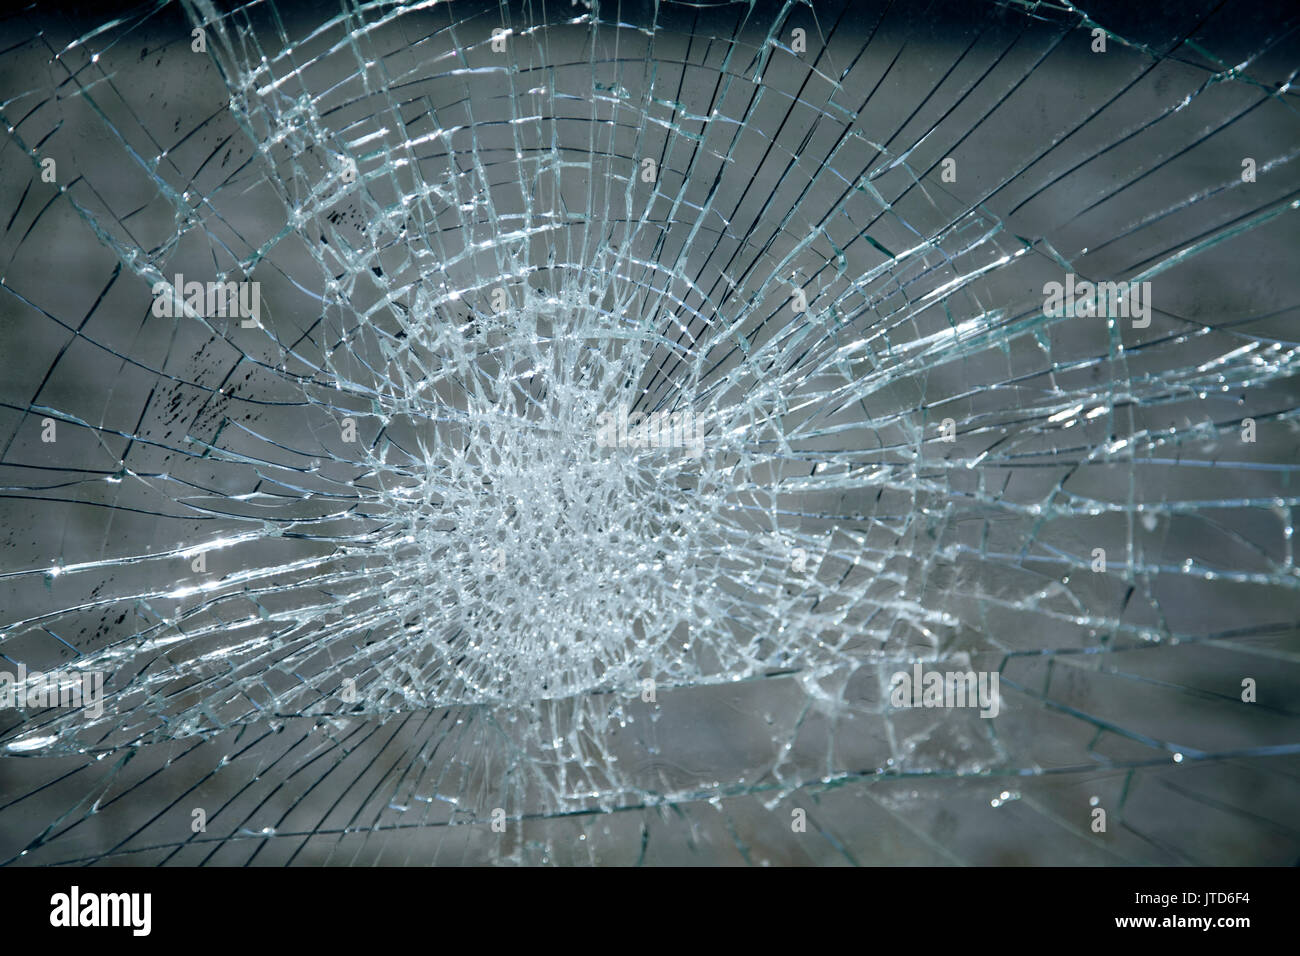 Cracked Glass - Stock Image